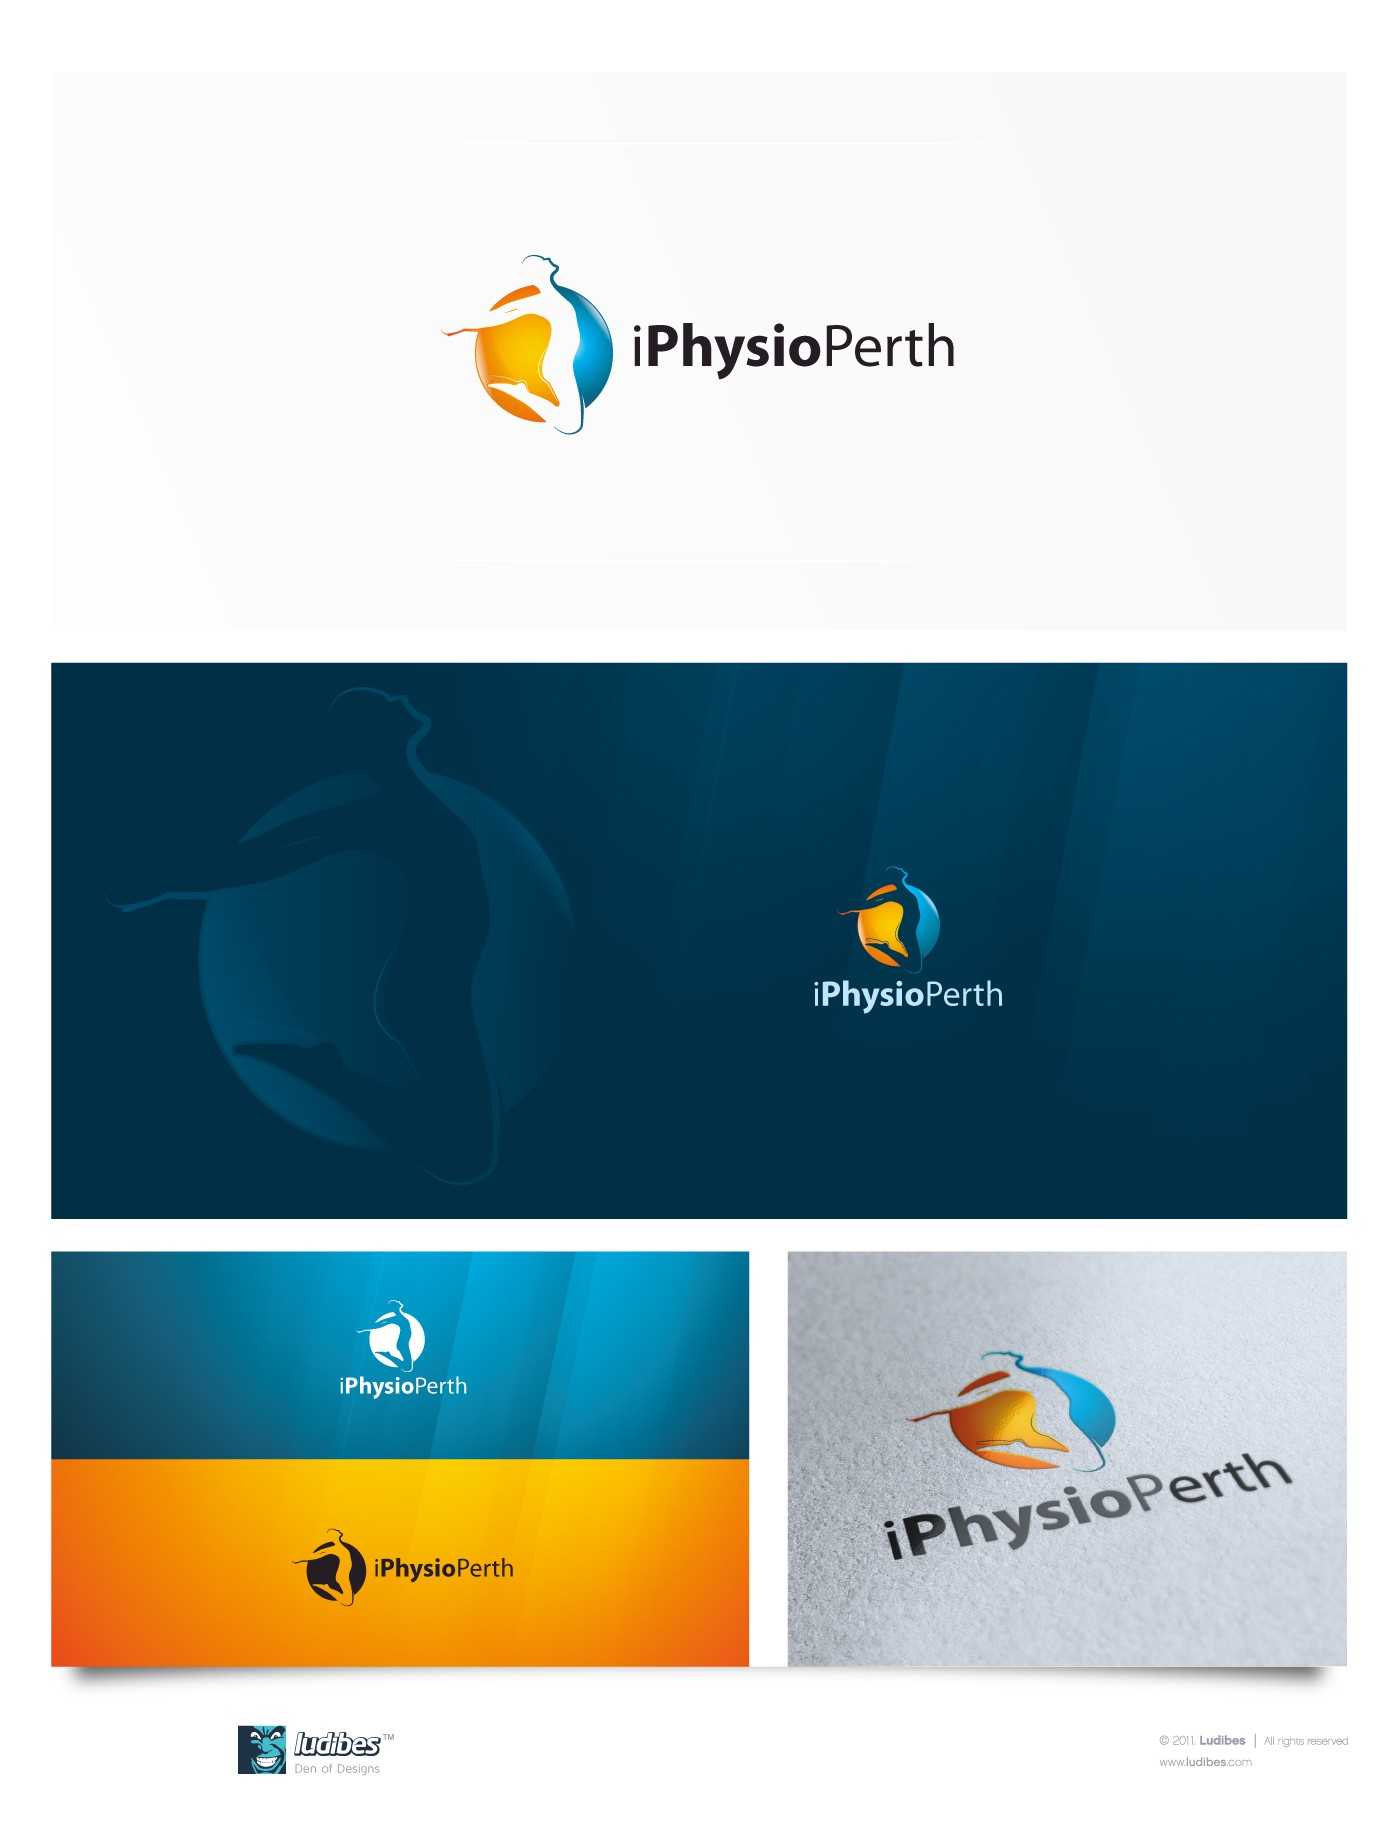 New logo wanted for iPhysioPerth